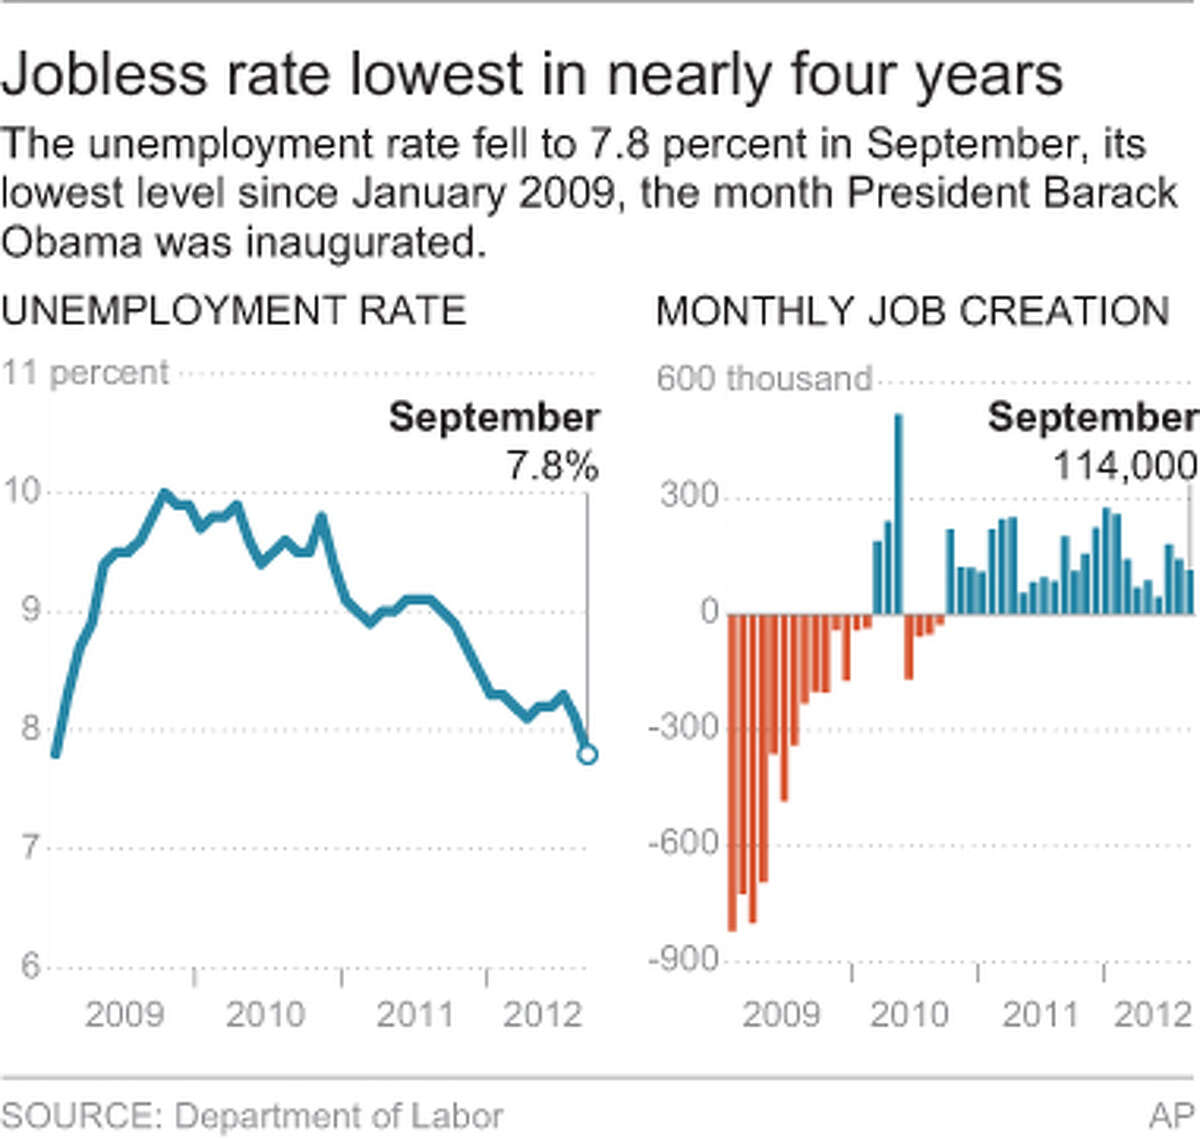 The unemployment rate fell to 7.8 percent in September, its lowest level since January 2009, the month President Barack Obama was inaugurated.